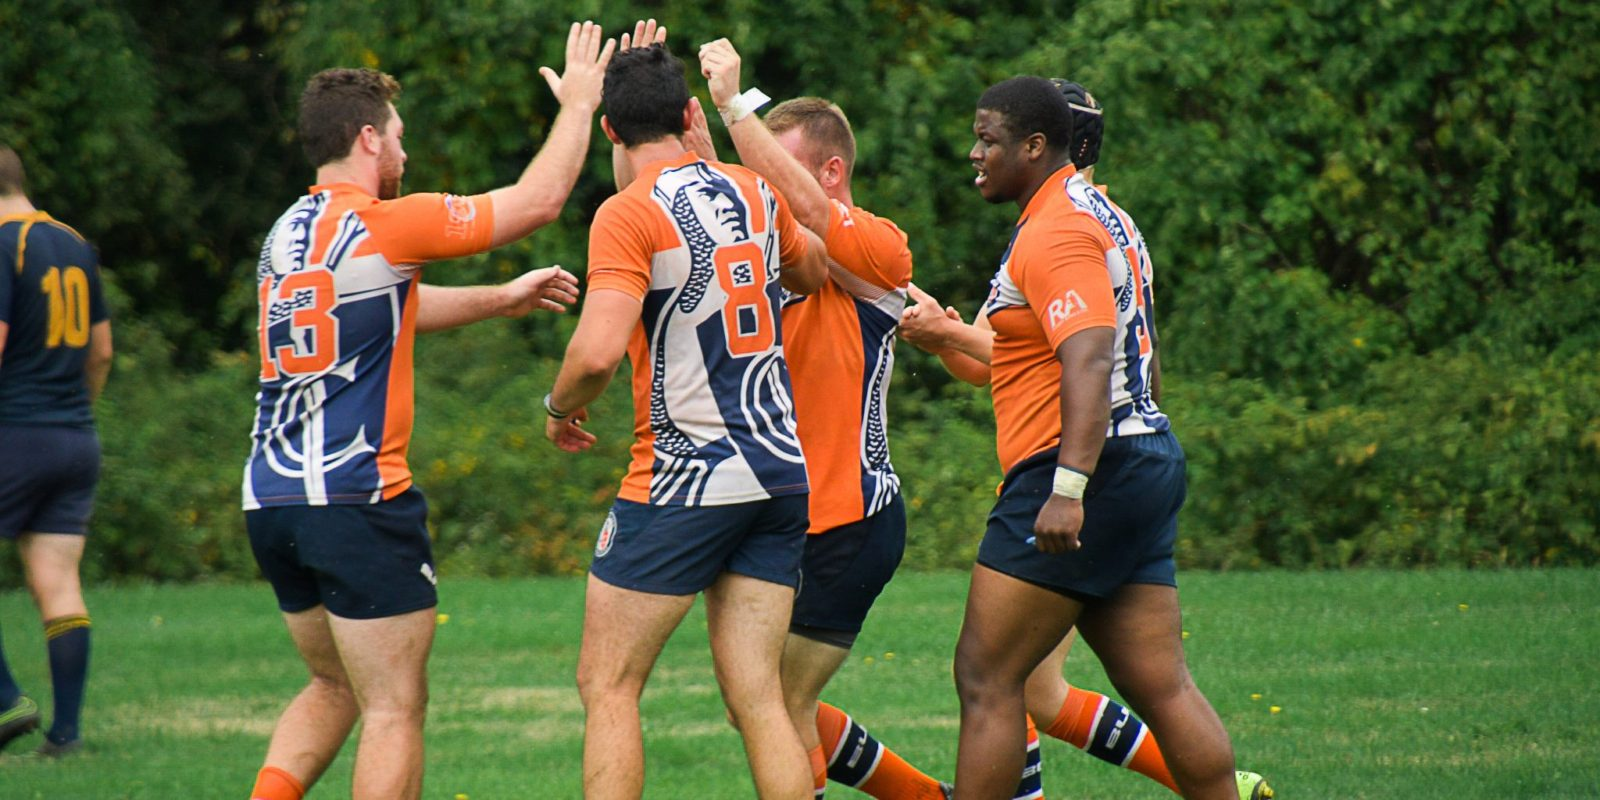 Fall 2017 Division 3 Update